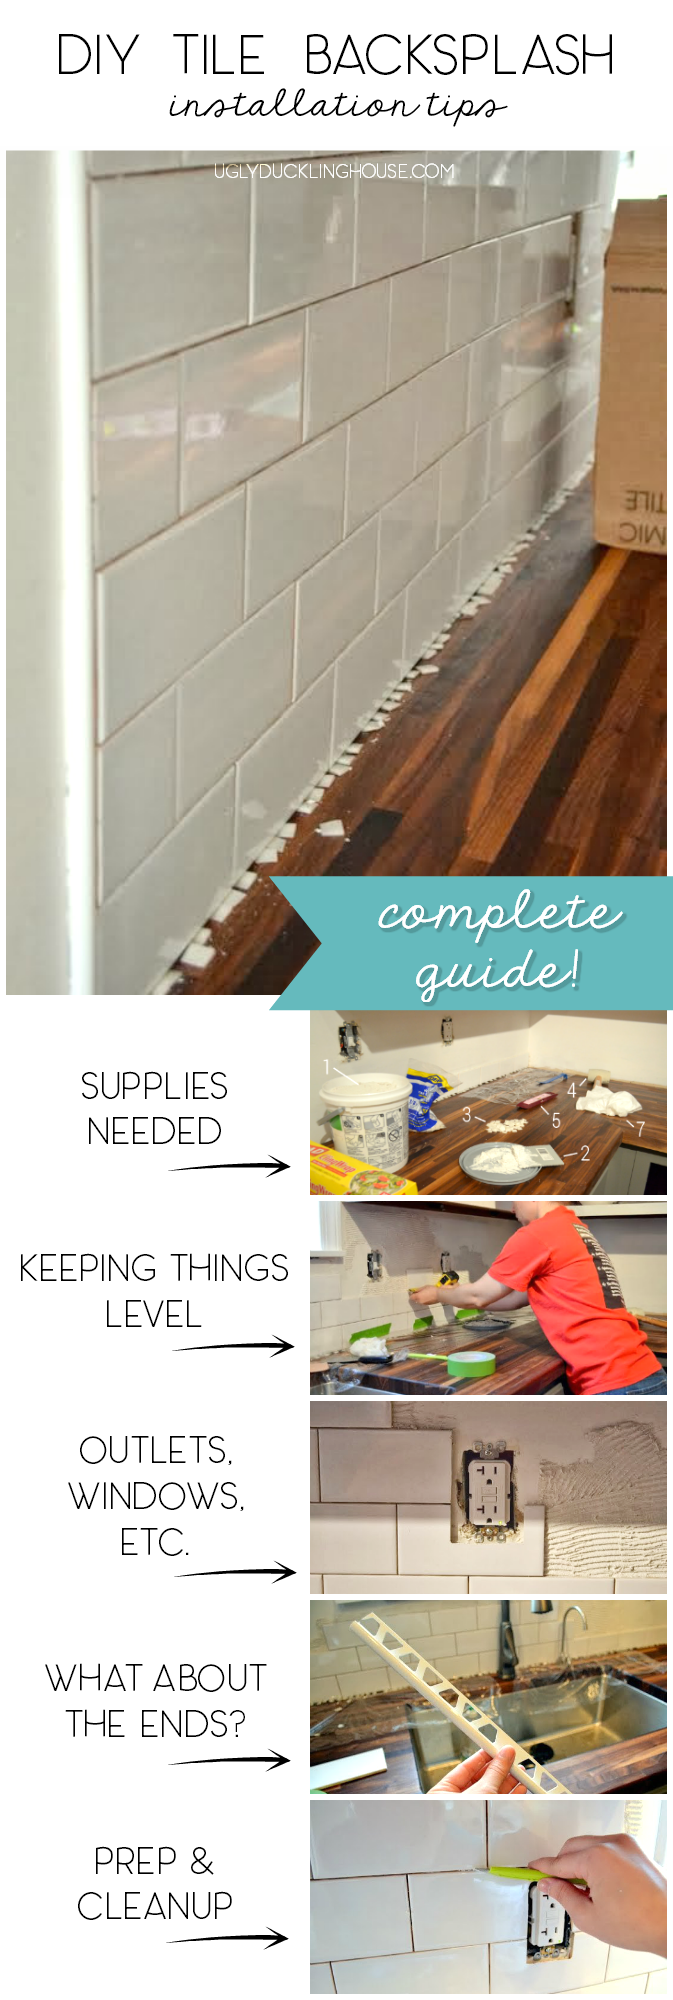 diy tile backsplash tutorial complete guide